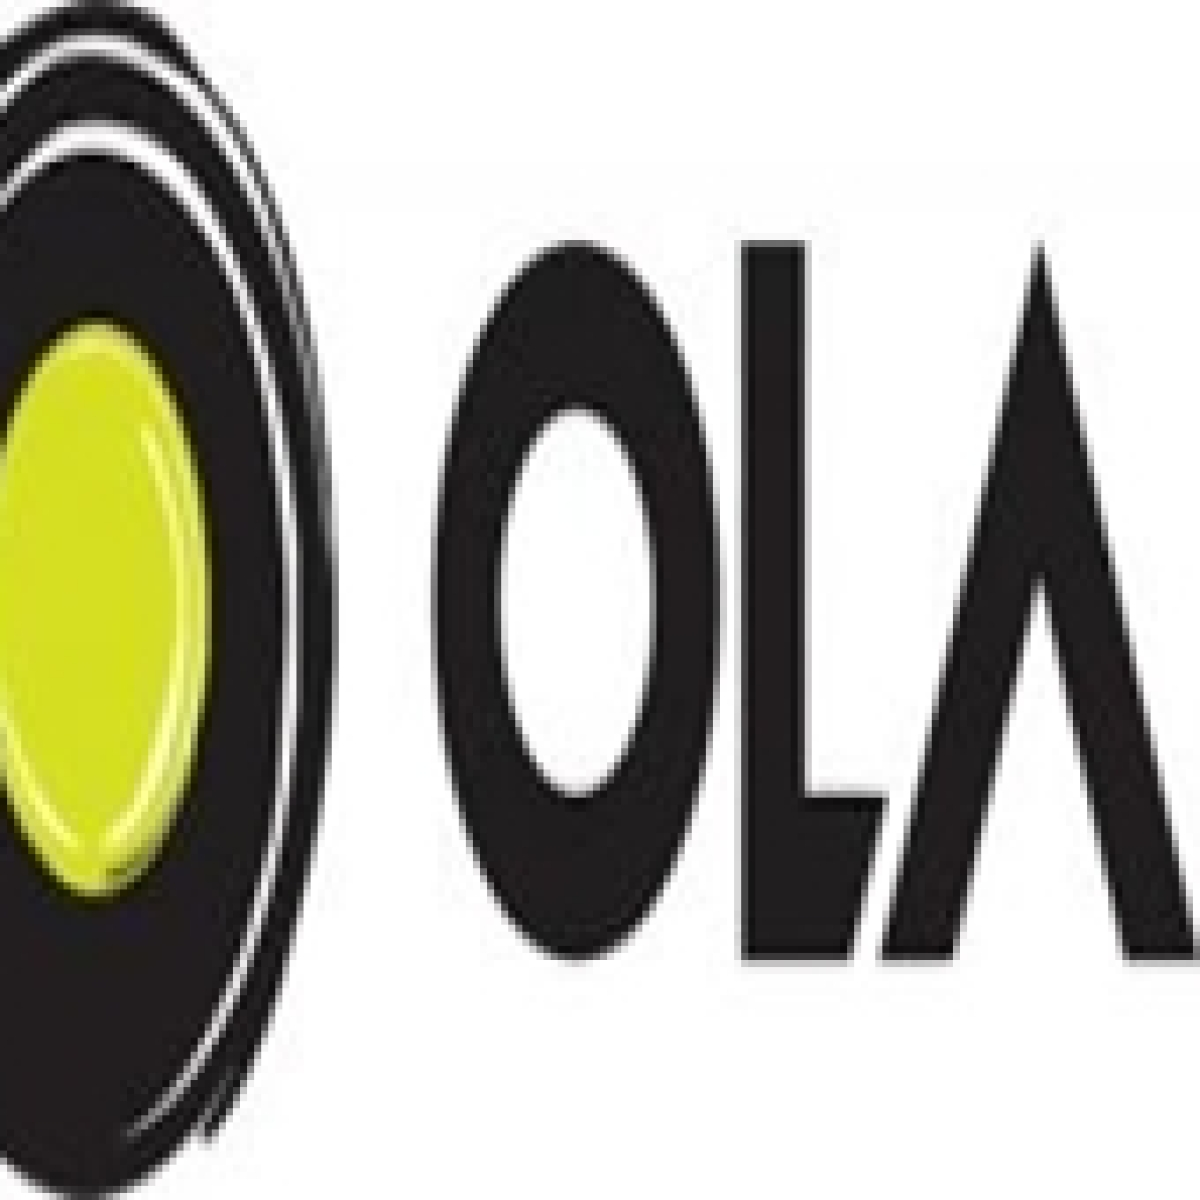 Ola may shed 5-8% of staff ahead of IPO